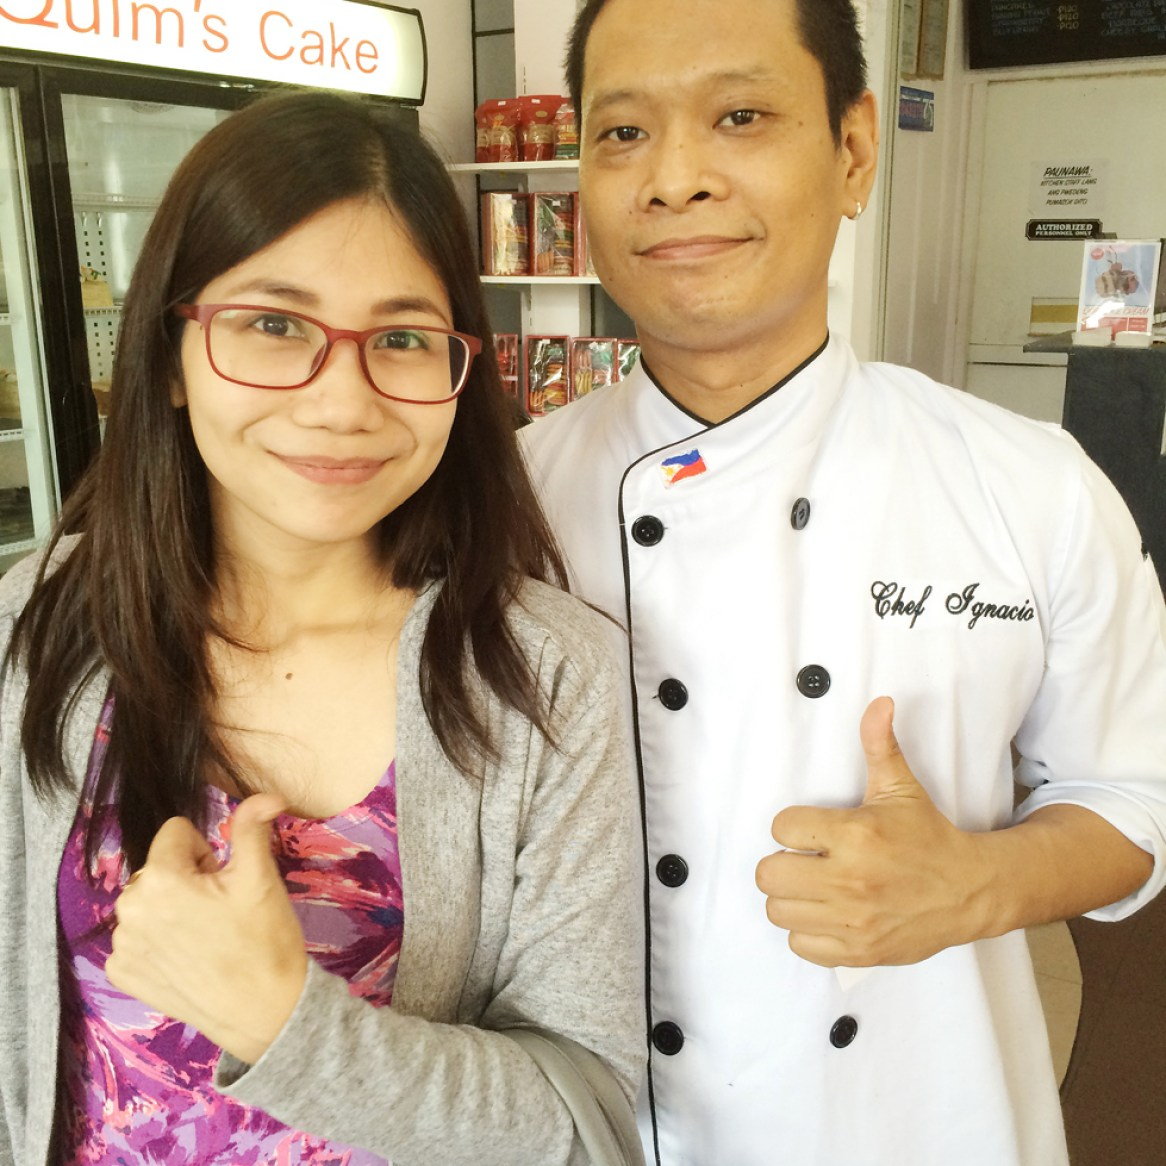 With Chef Jhollow